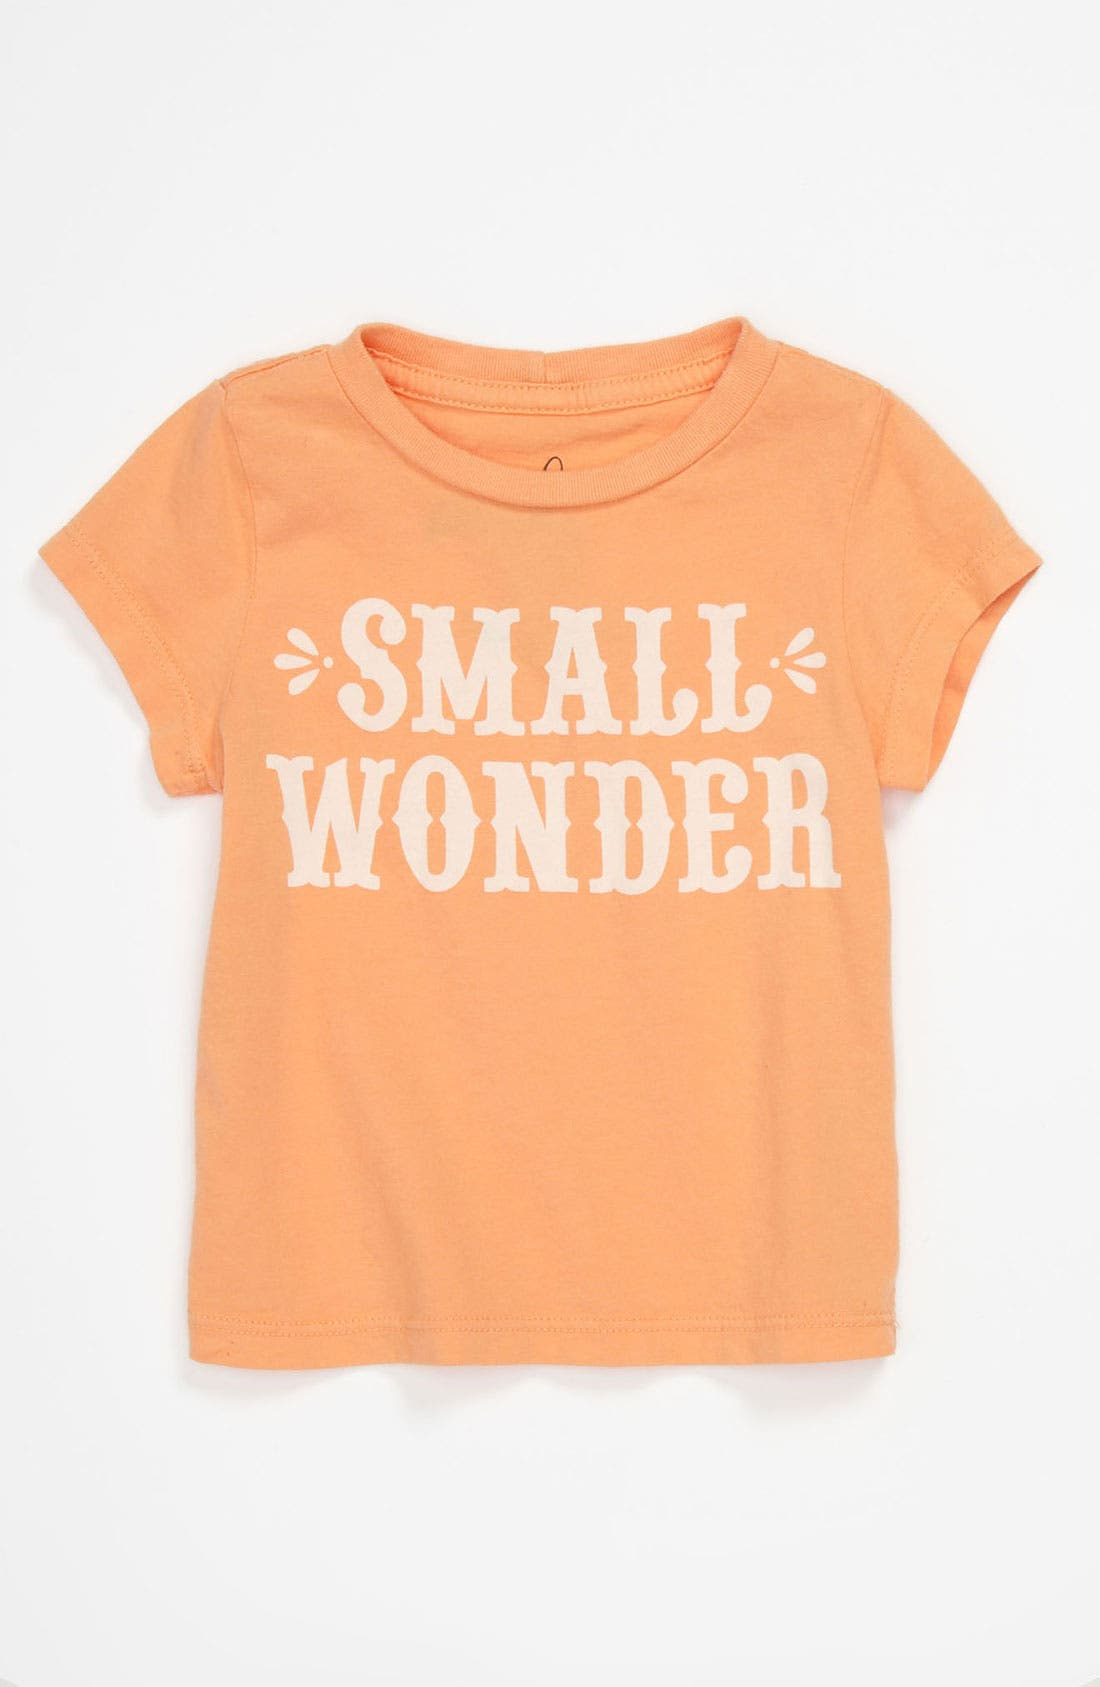 Main Image - Peek 'Small Wonder' T-Shirt (Baby)